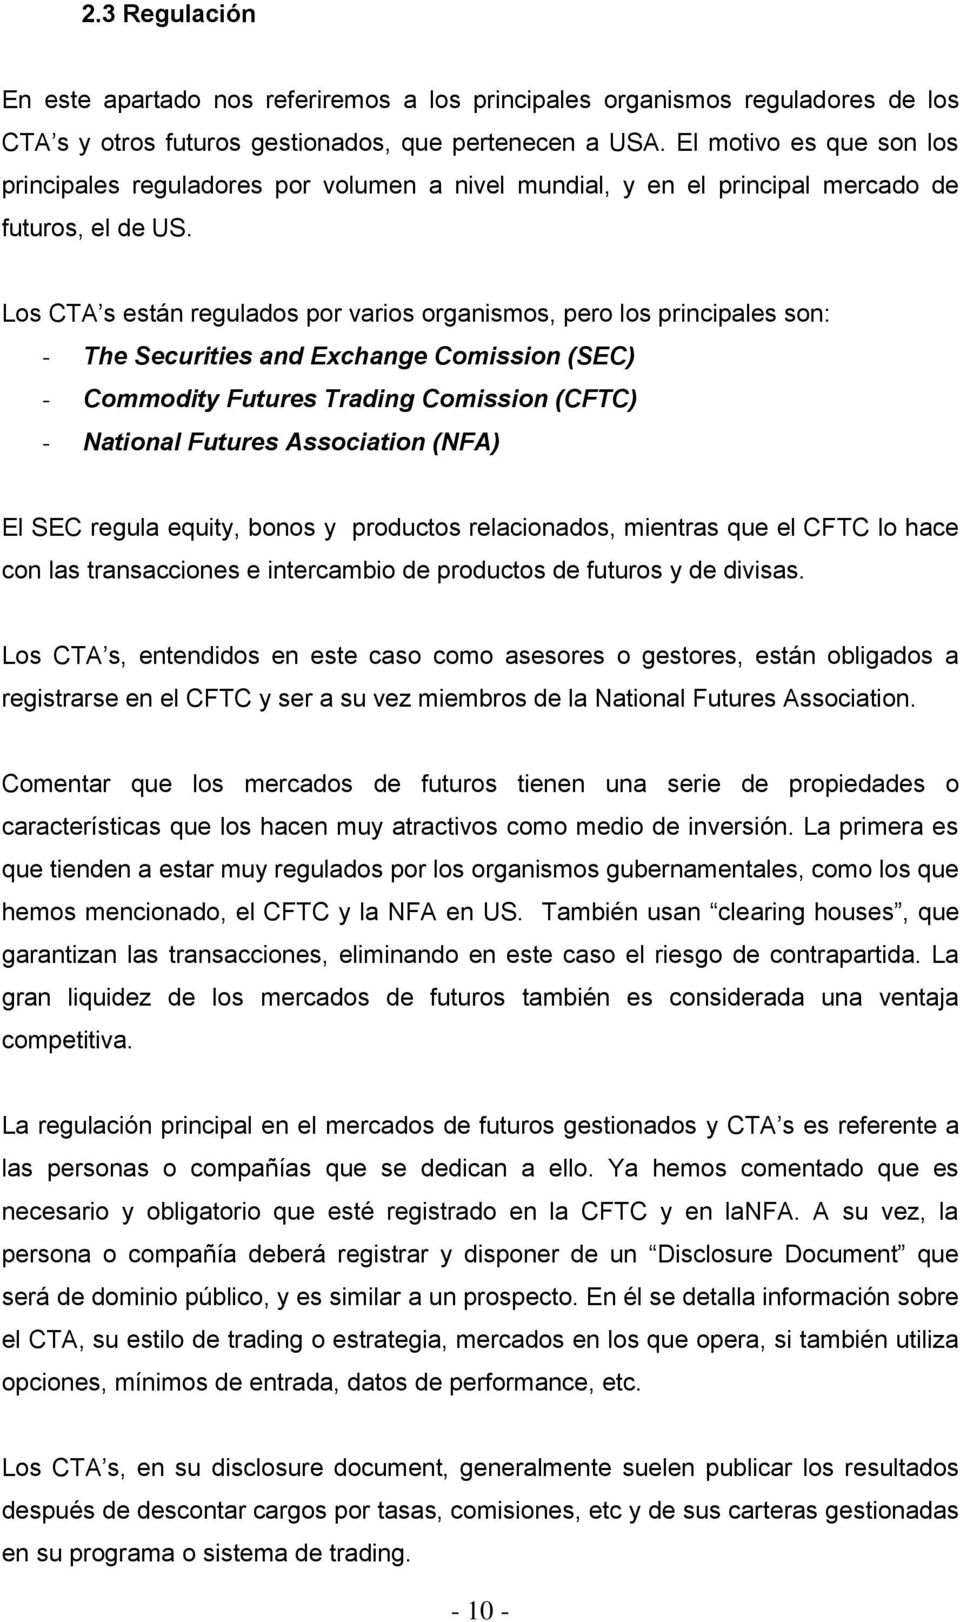 Los CTA s están regulados por varios organismos, pero los principales son: - The Securities and Exchange Comission (SEC) - Commodity Futures Trading Comission (CFTC) - National Futures Association